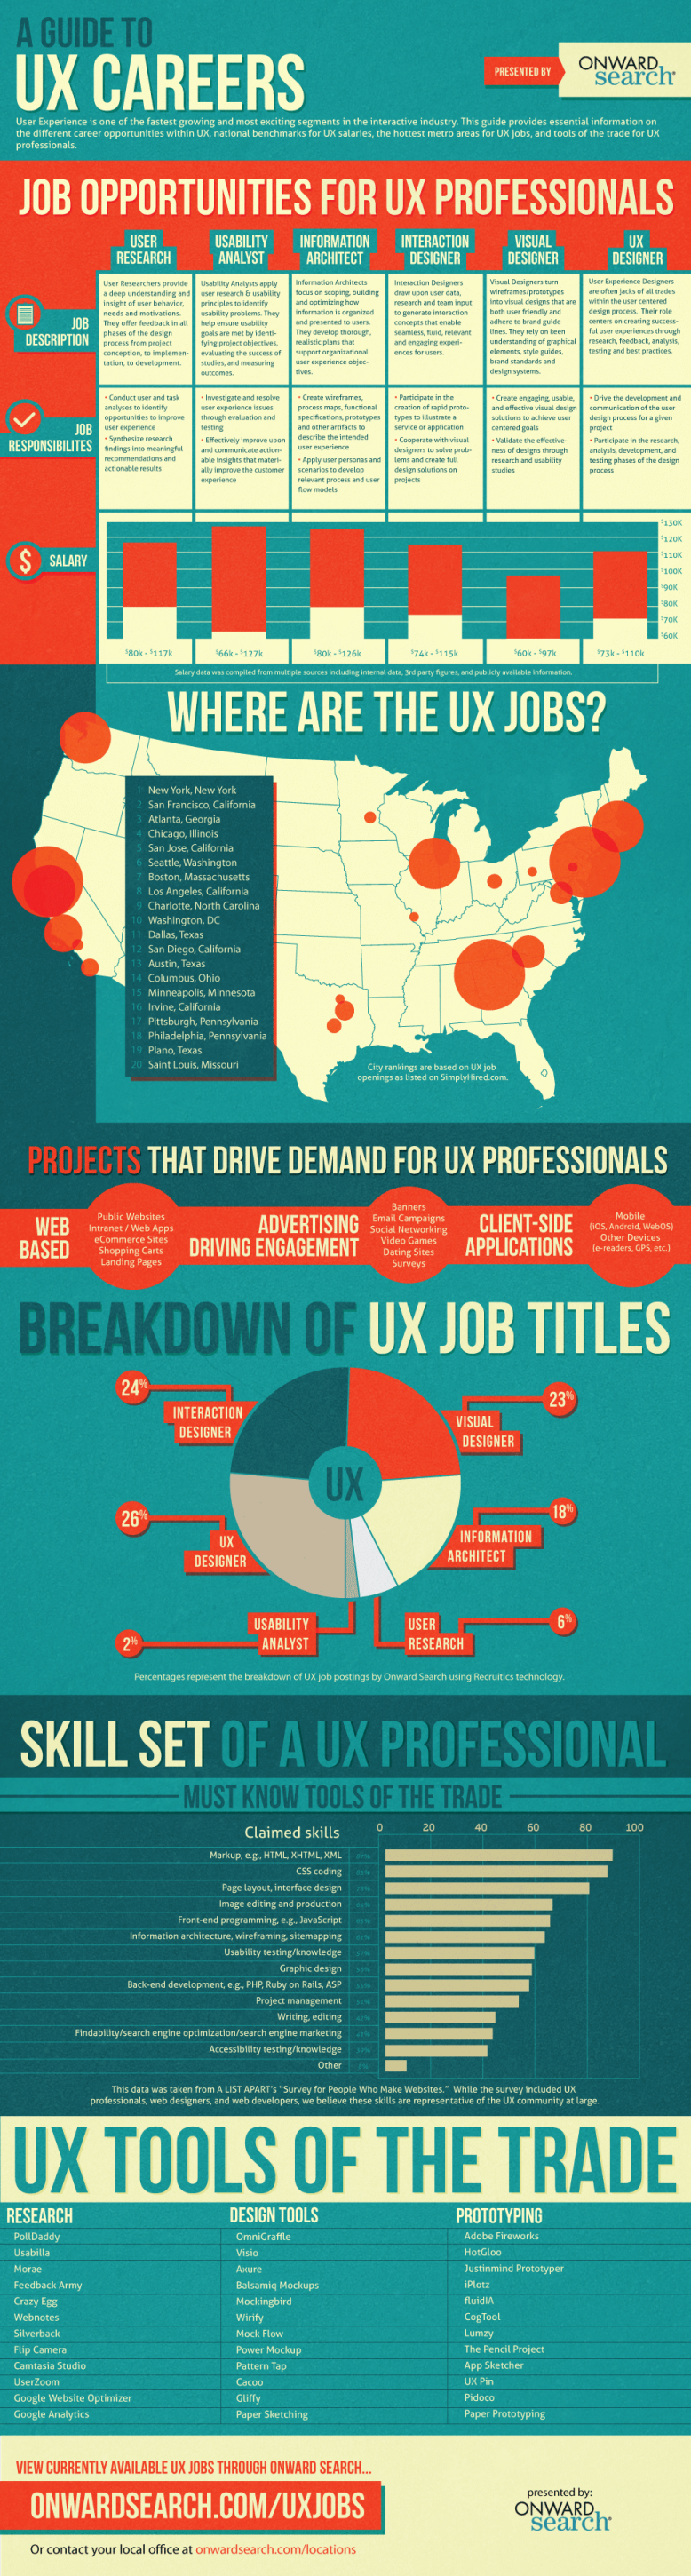 UX-Career-Guide-Infographic